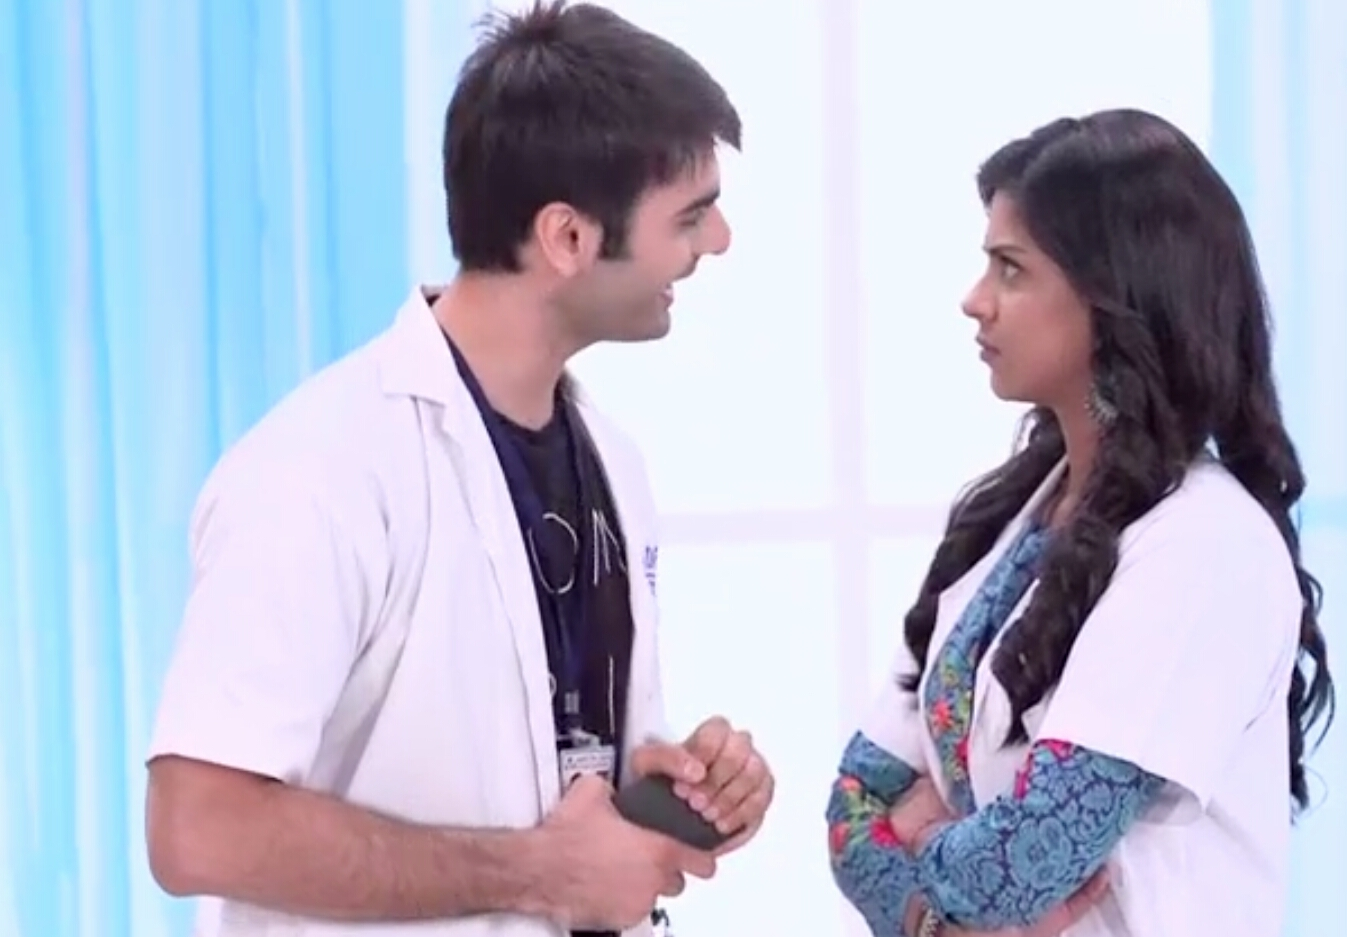 Veer And Saanchi From Savitri Devi College And Hospital